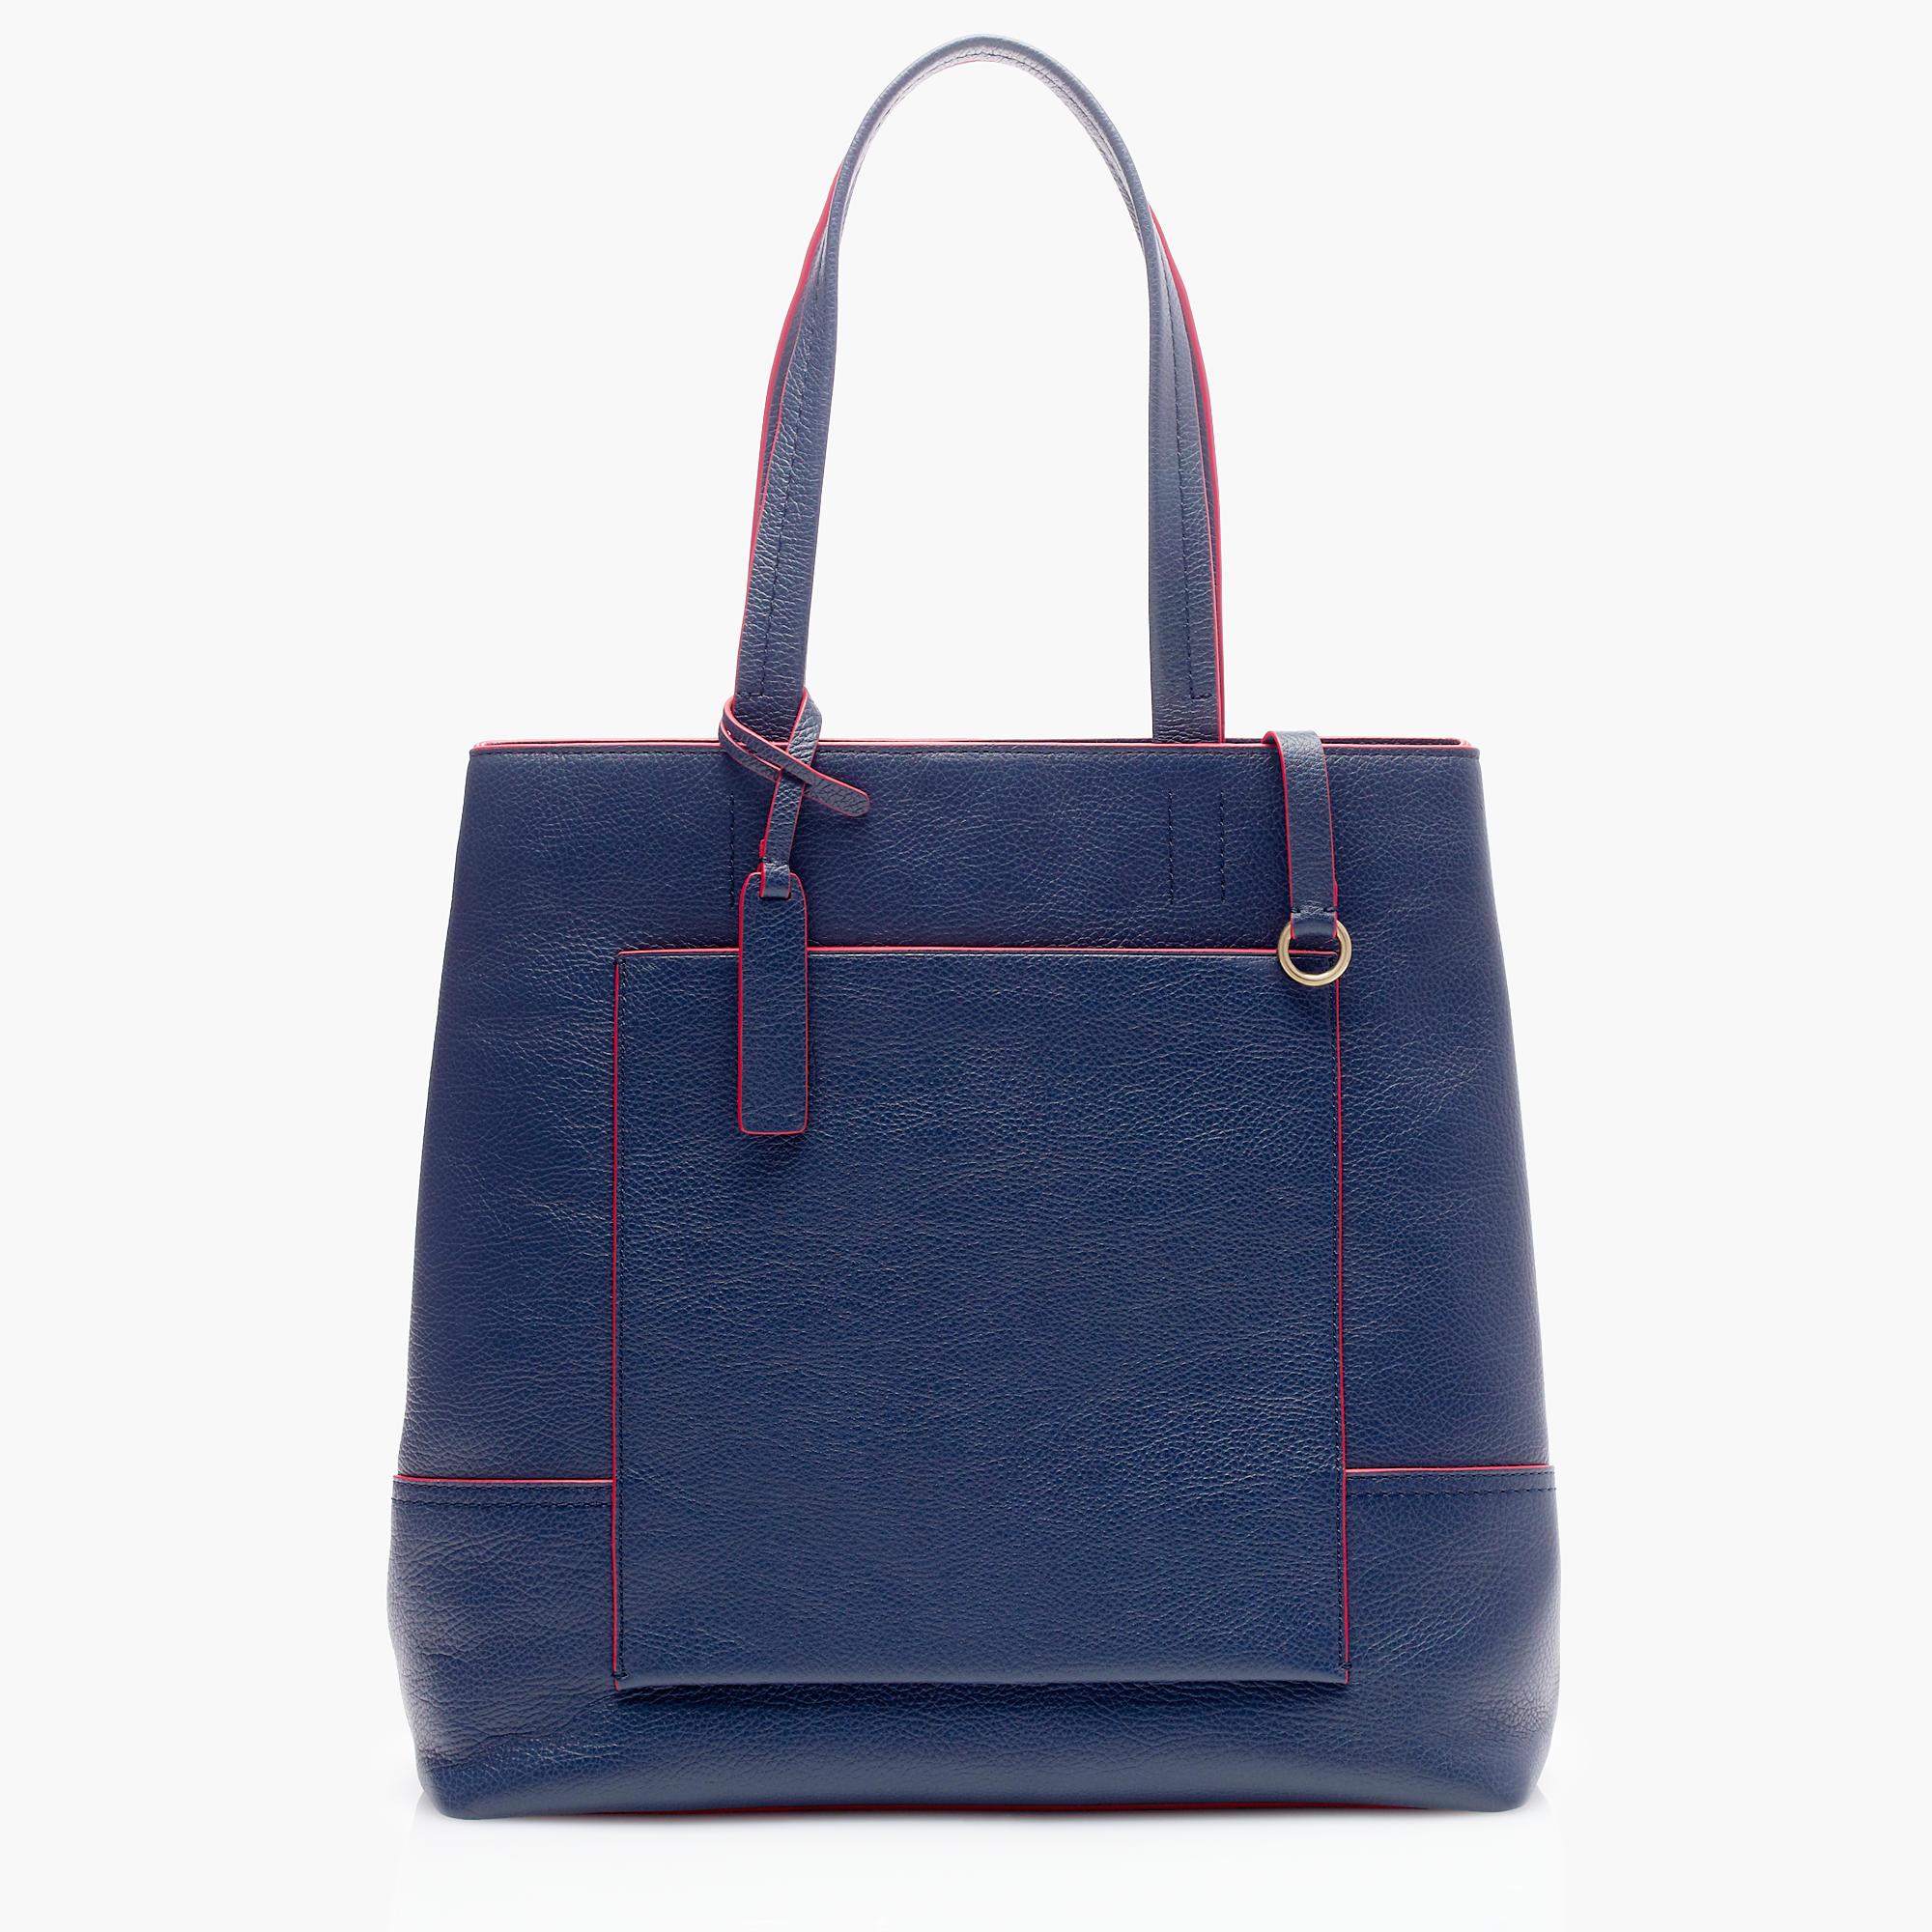 J.Crew All-Day Tote in Italian Leather, Vintage Indigo